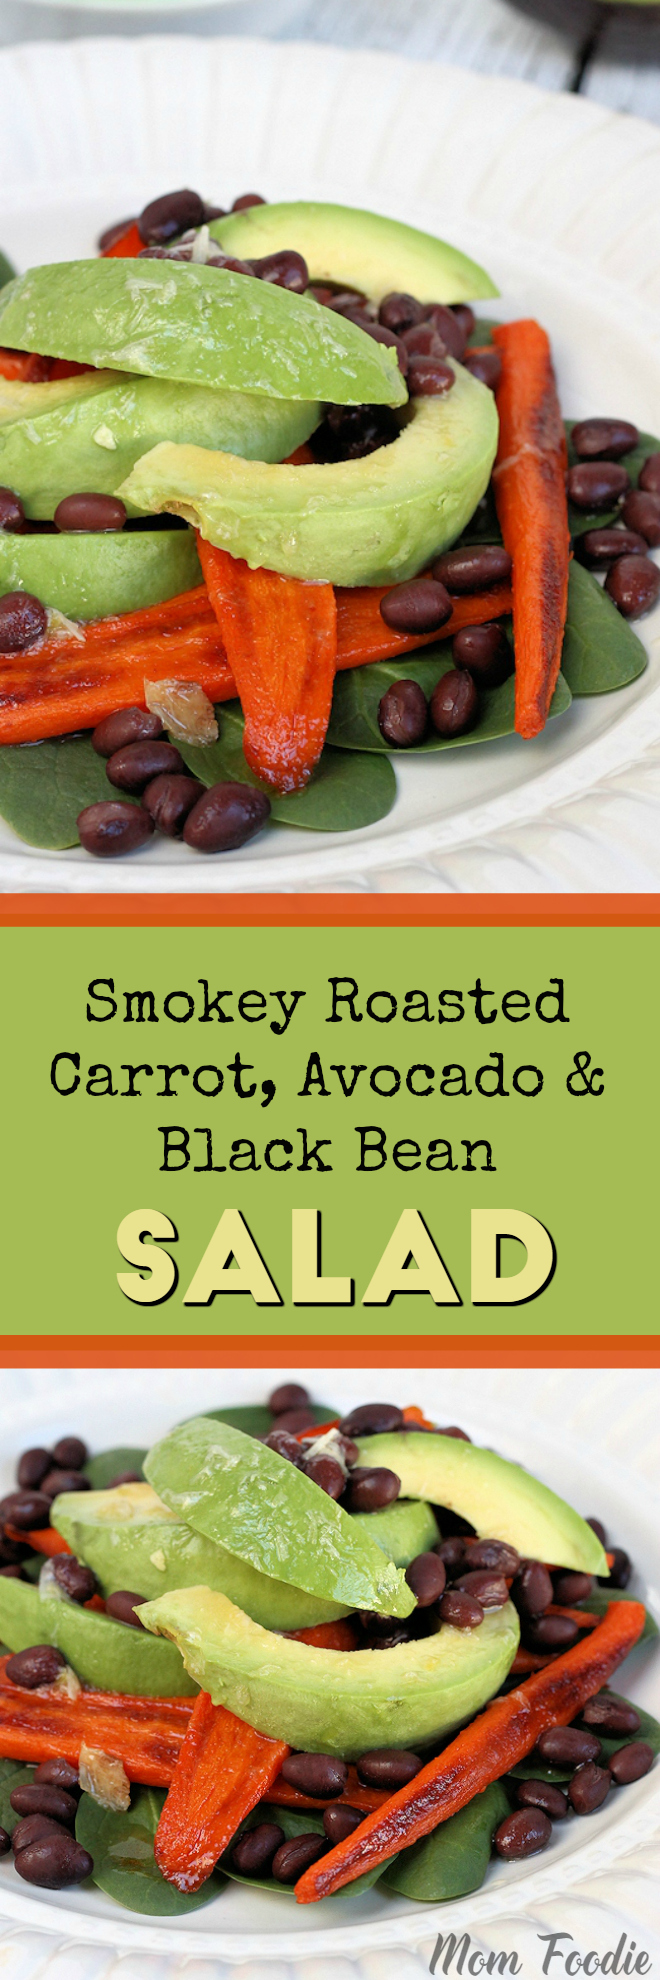 Smokey Roasted Carrot, Avocado & Black Bean Salad with Roasted Garlic Lemon Dressing #vegan #vegetarian #salad #avocado